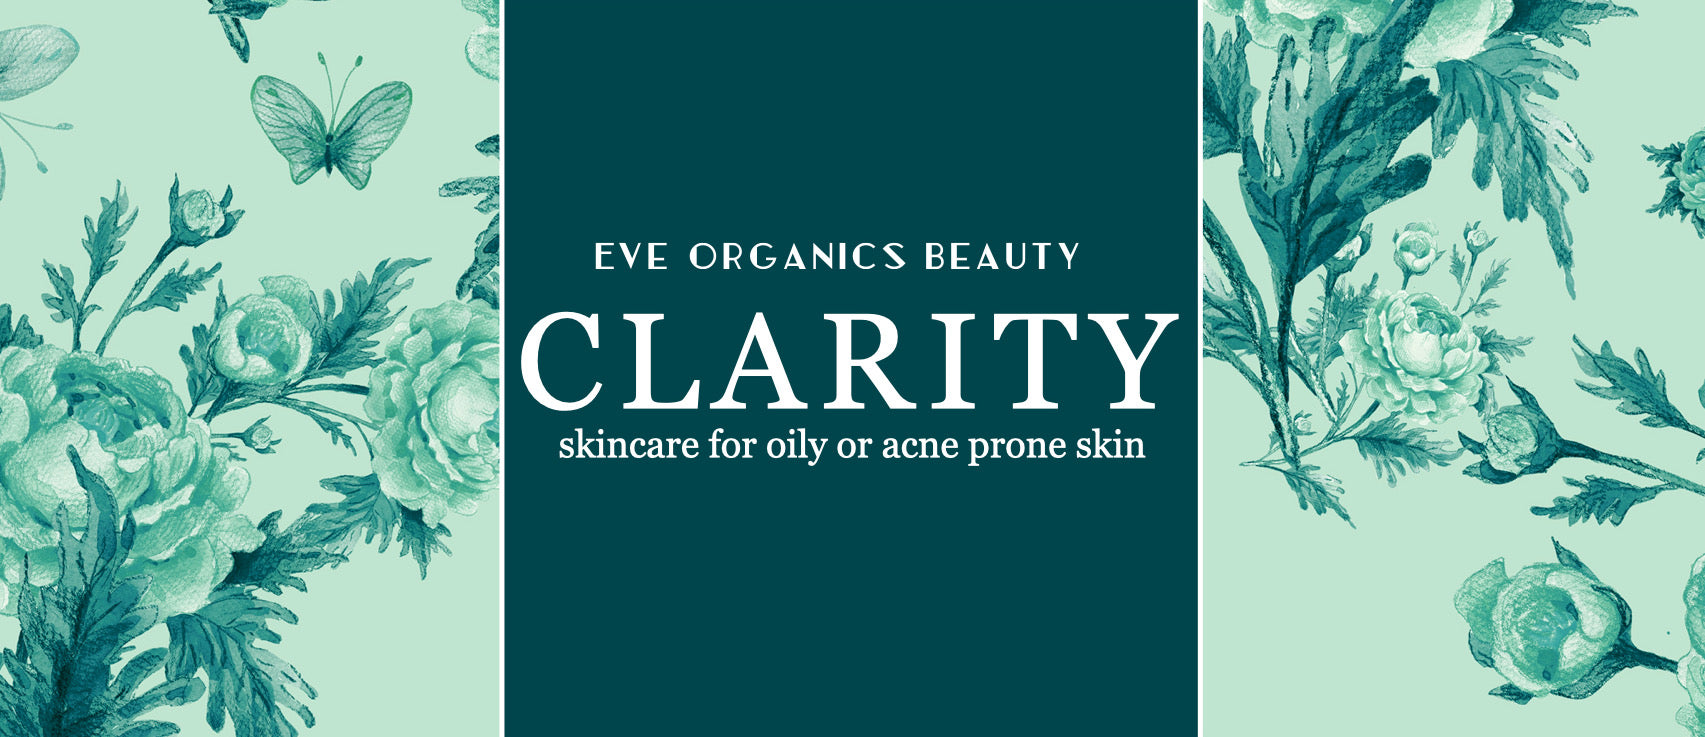 CLARITY for oily or acne prone skin